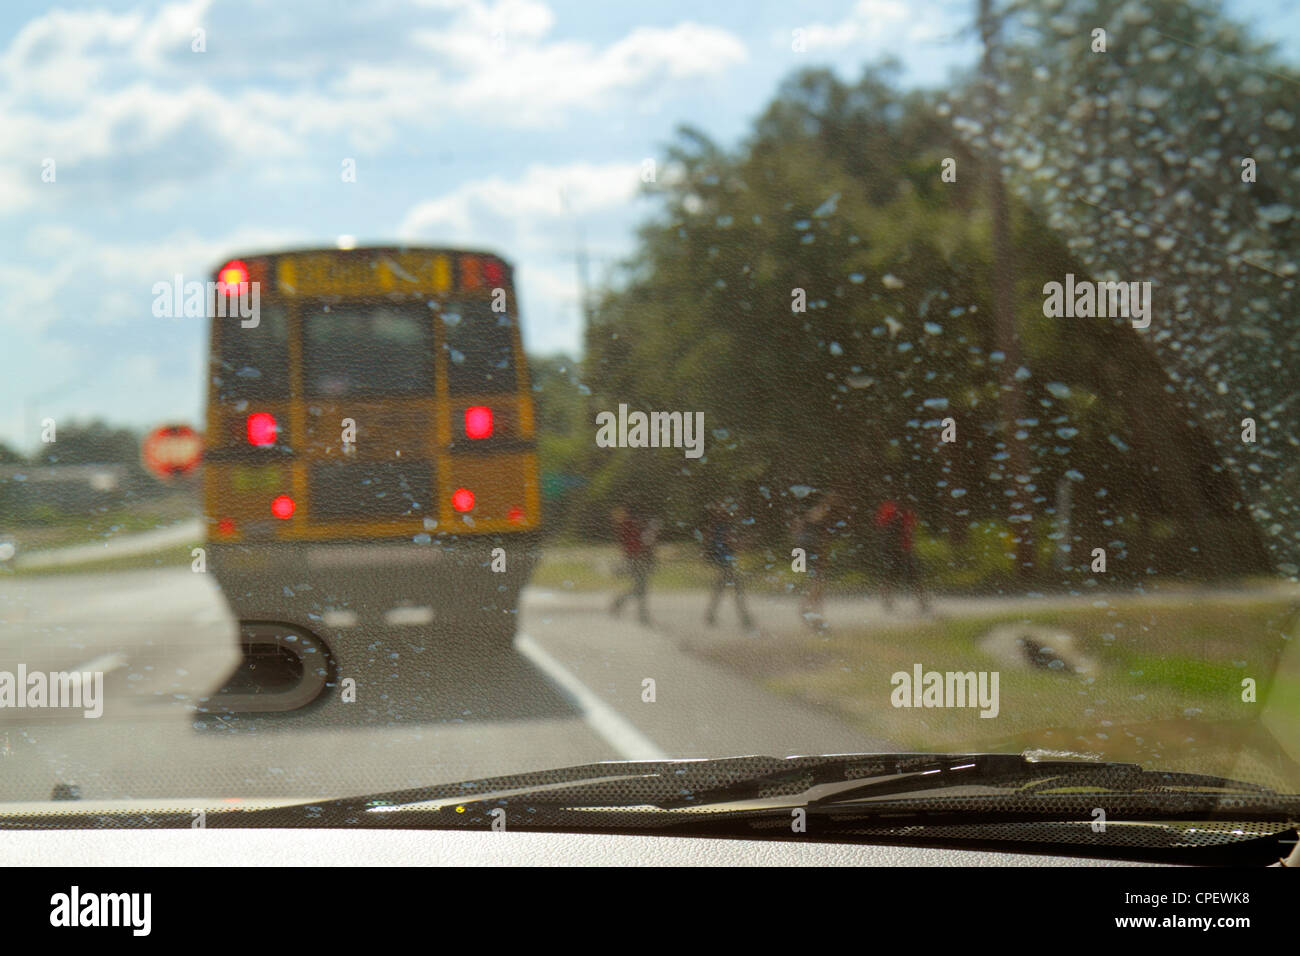 Florida Bartow State Road 60 highway public school bus yellow stopped dropping off student after school automobile - Stock Image